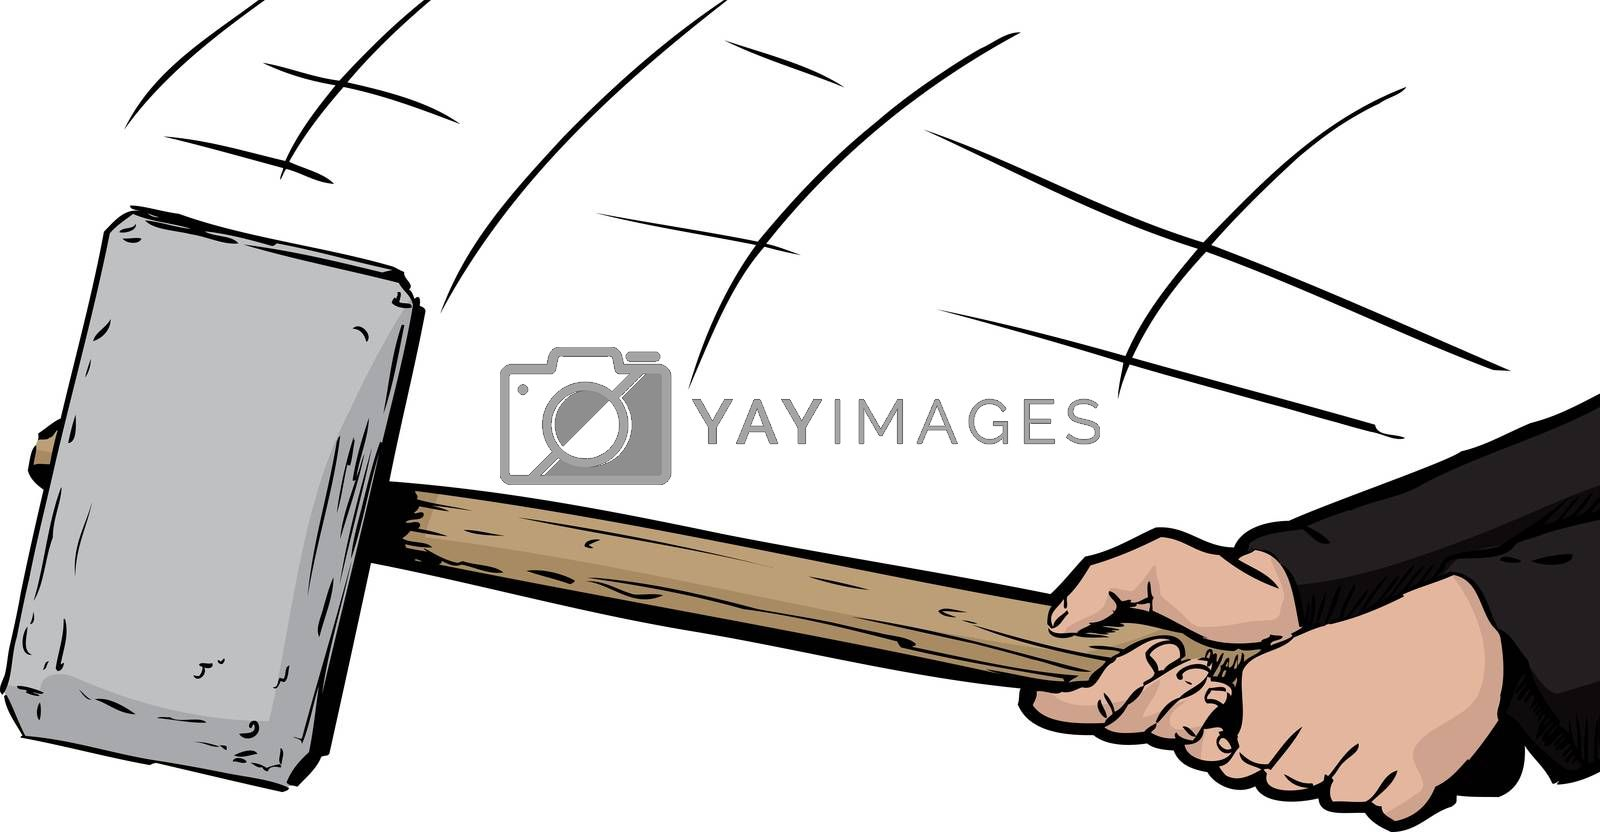 Unidentifiable person swinging a large sledge hammer over white